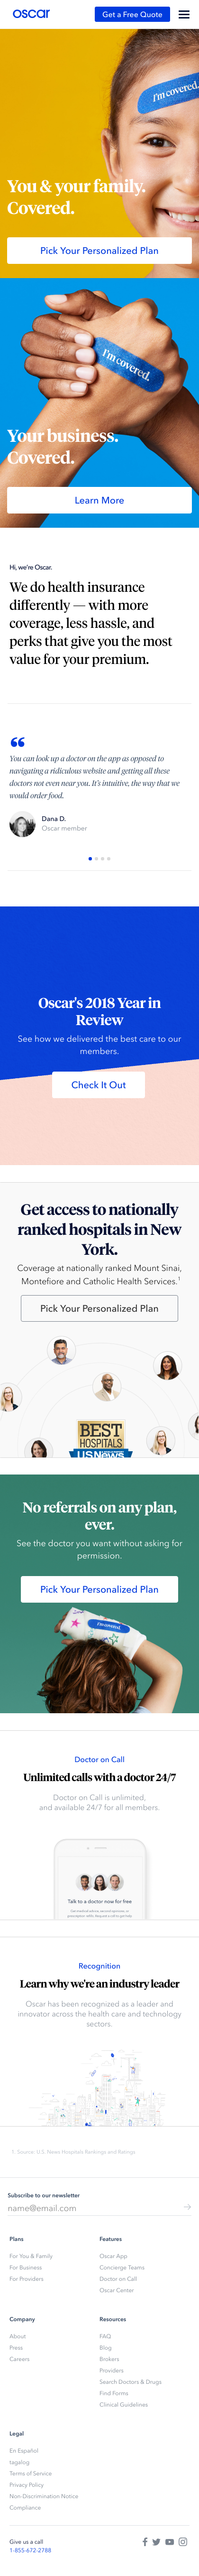 Example of Design for Health, Mobile Landing Page by hioscar.com-V2 | Mobile Landing Page Design